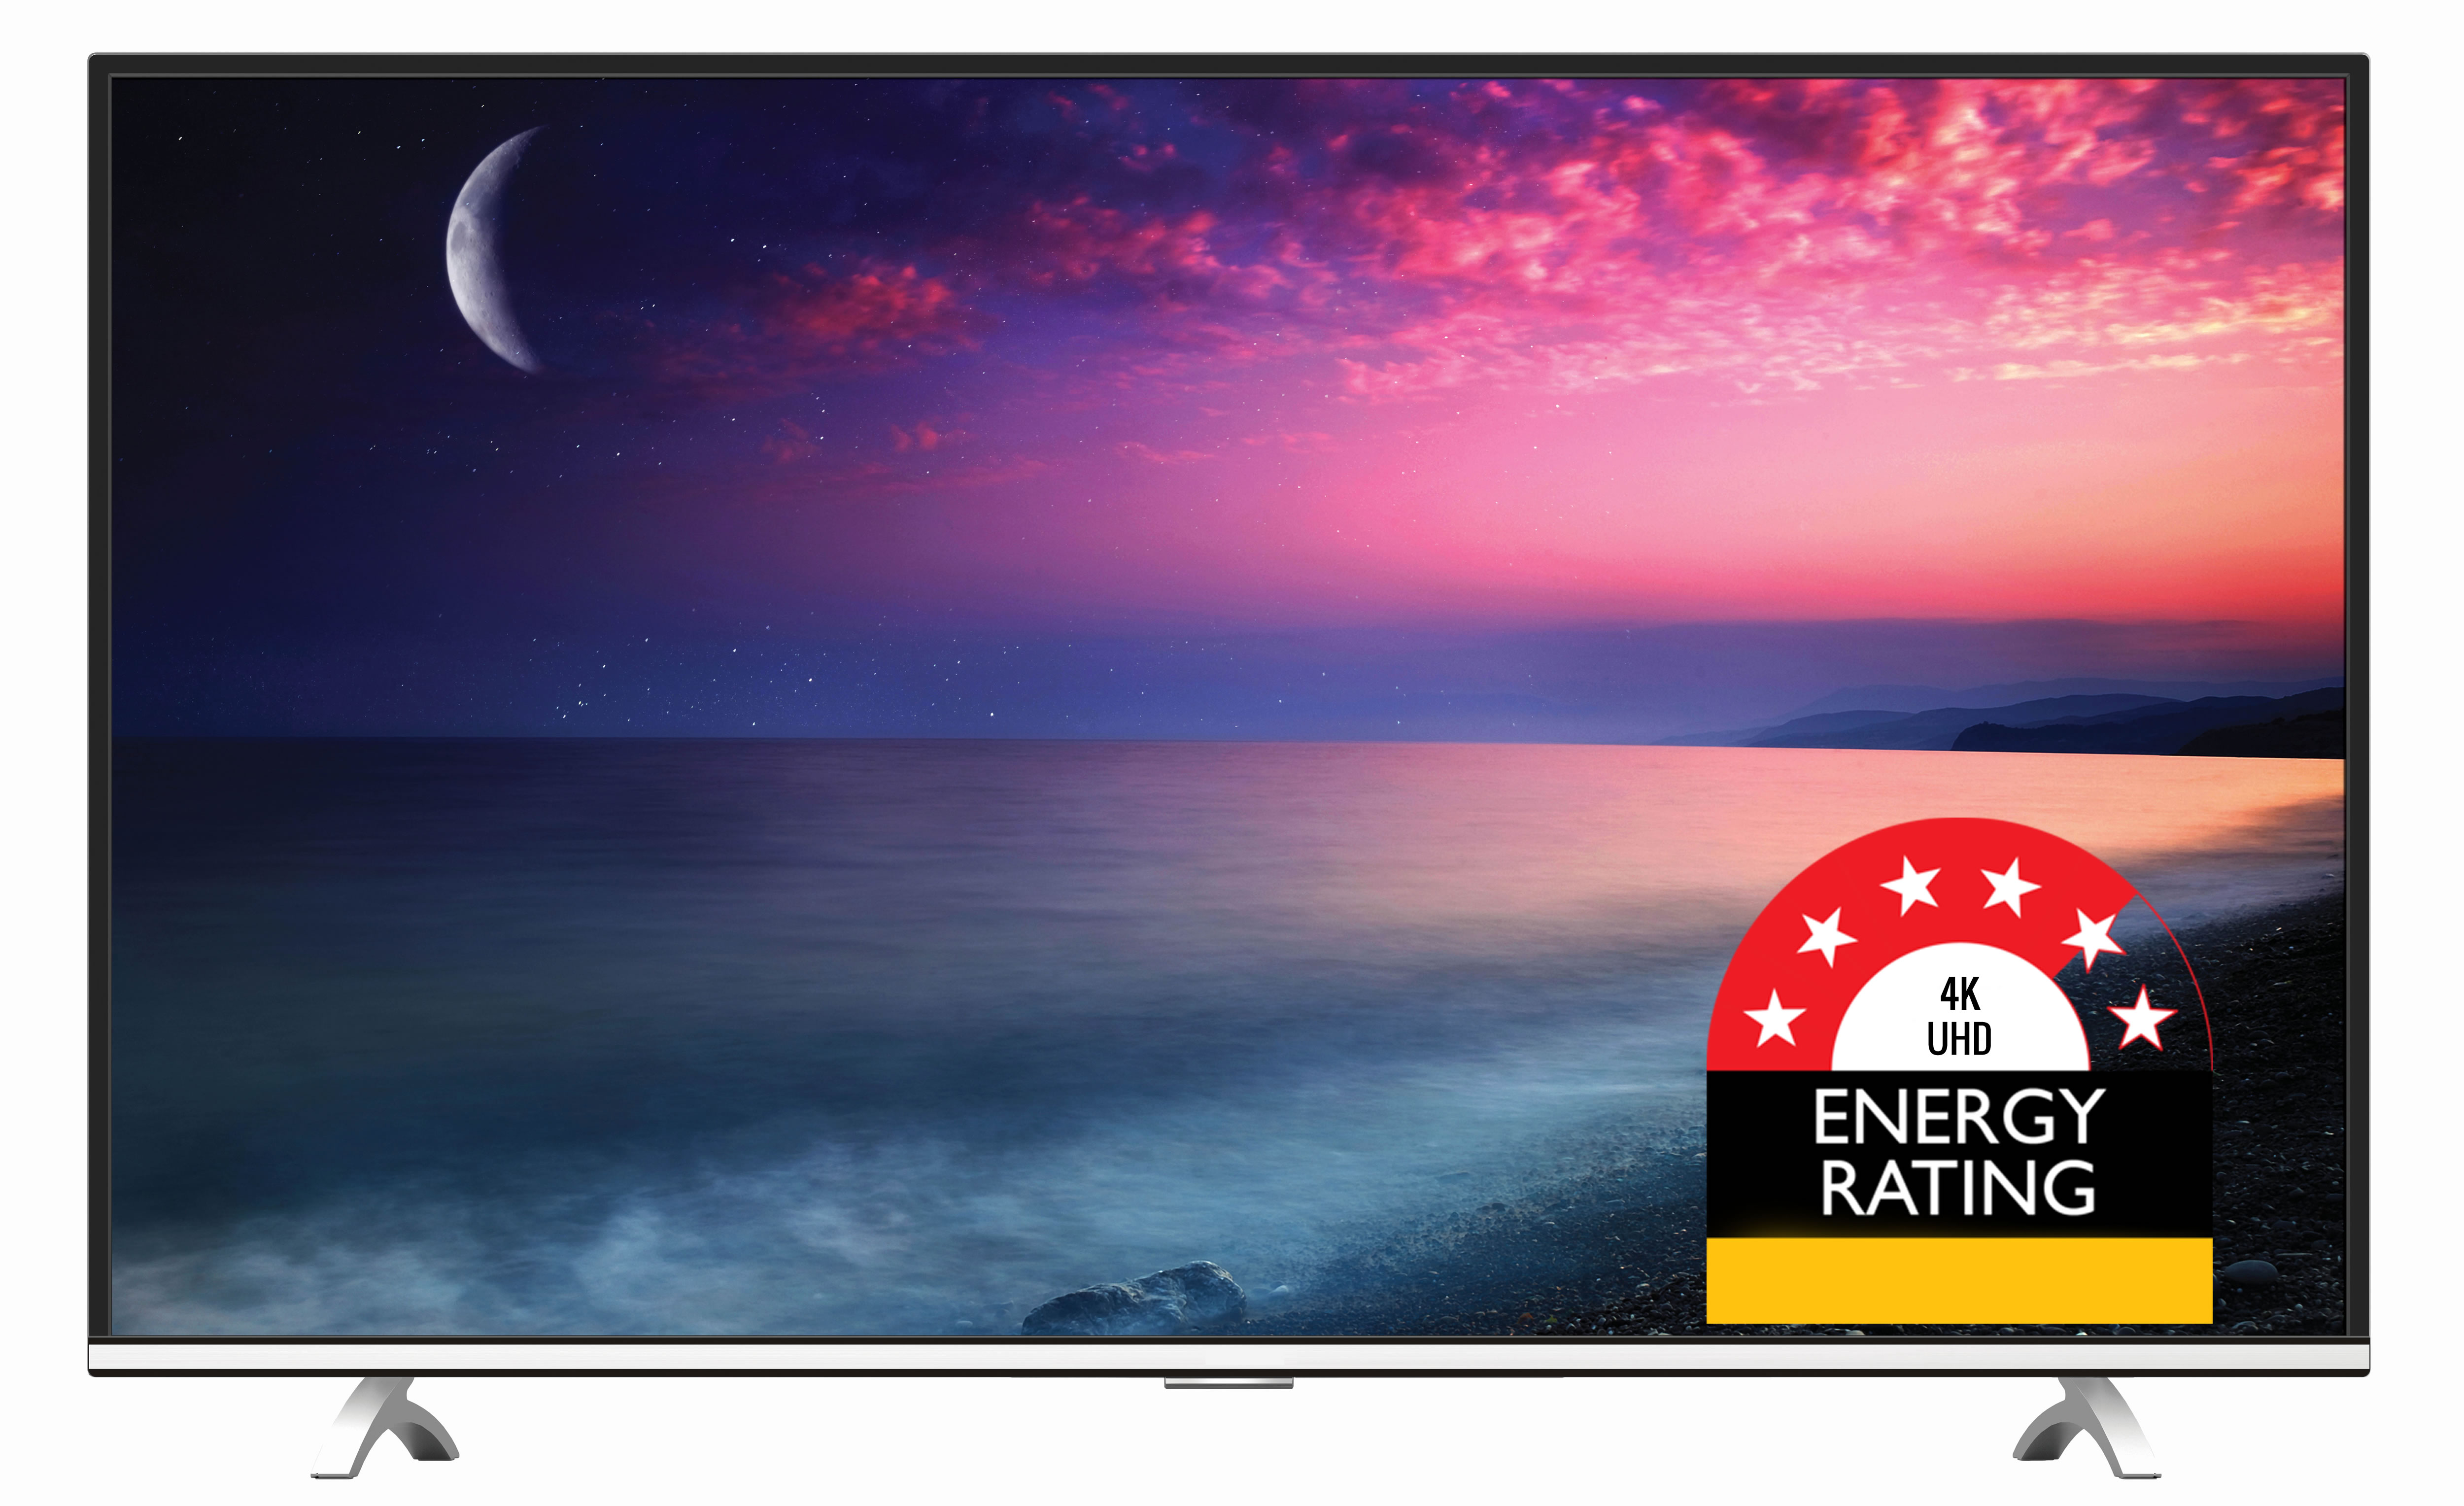 93e8bec59d94 4K UHD TV s More Expensive To Run Than Full HD Claims Energy Experts ...